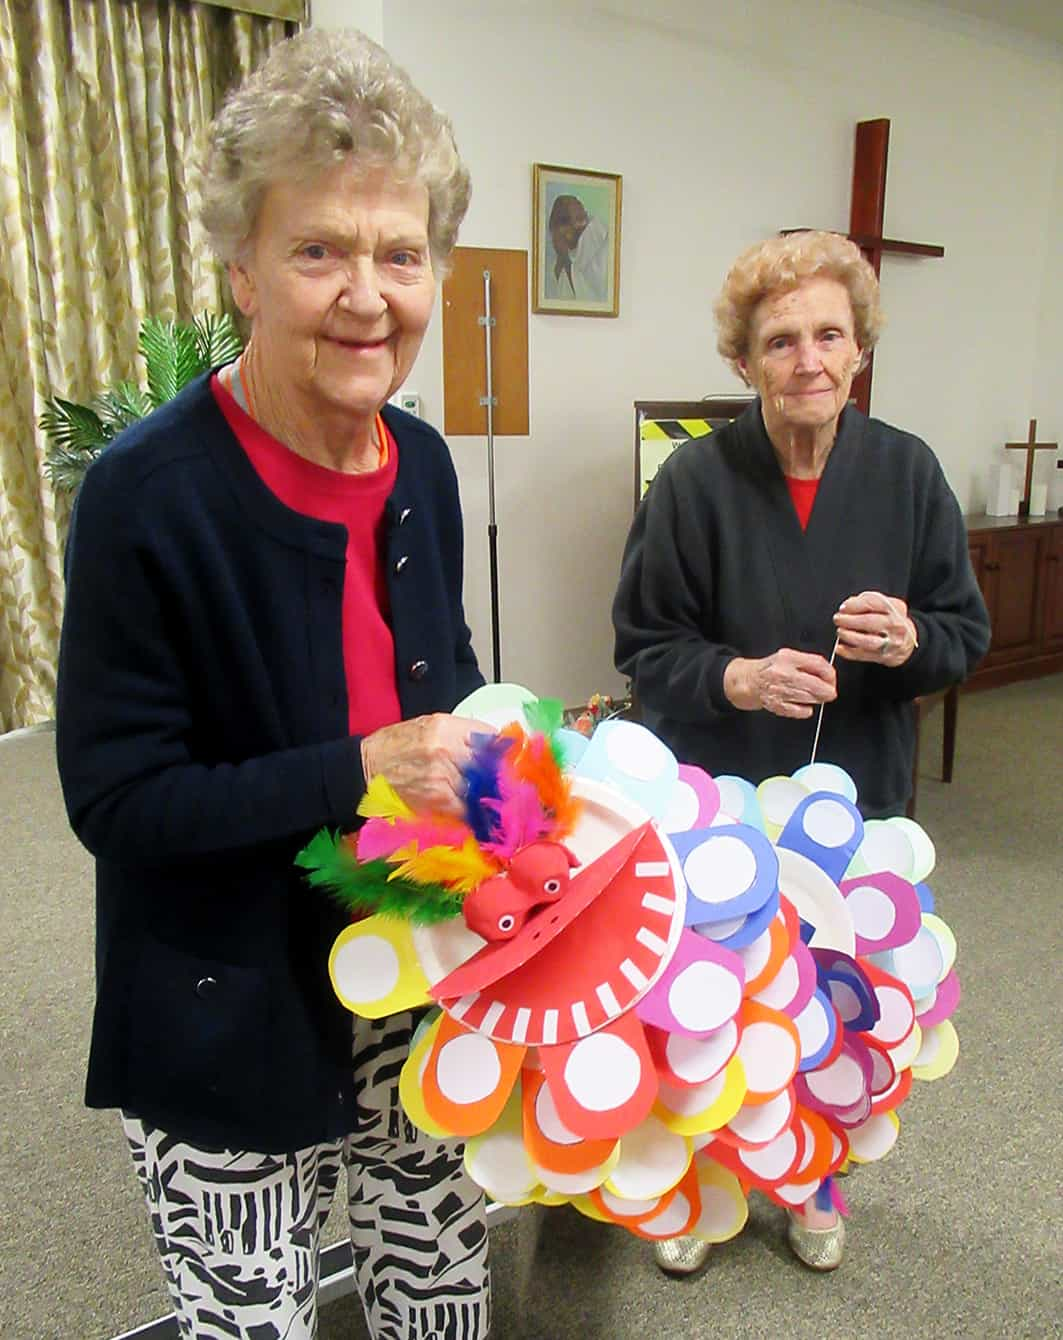 Elaine Cotton and Betty Orman with the dragon they made